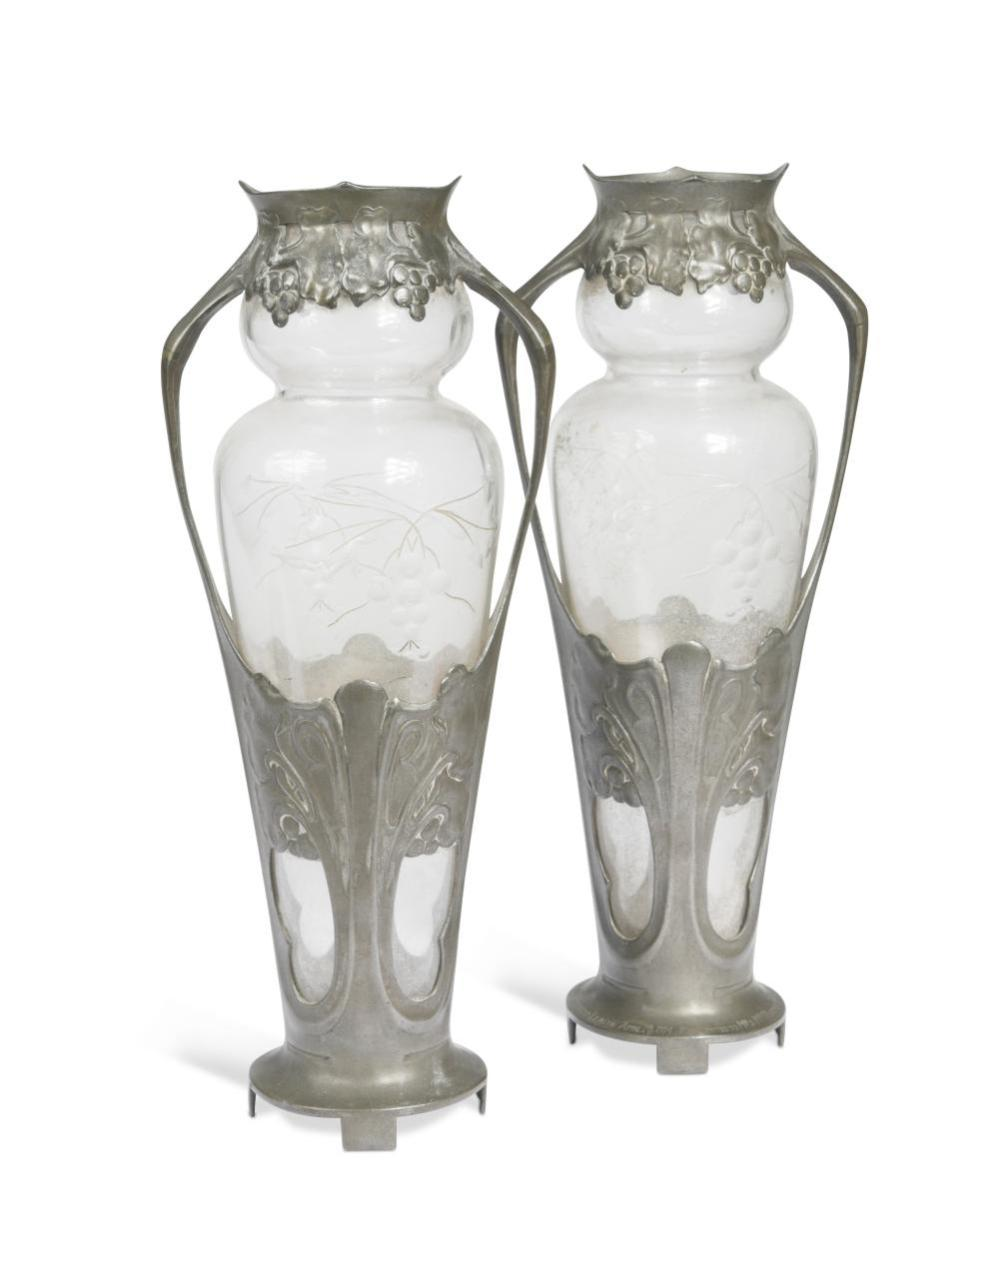 A pair of Art Nouveau Urania pewter mounted glass vases, circa 1900,